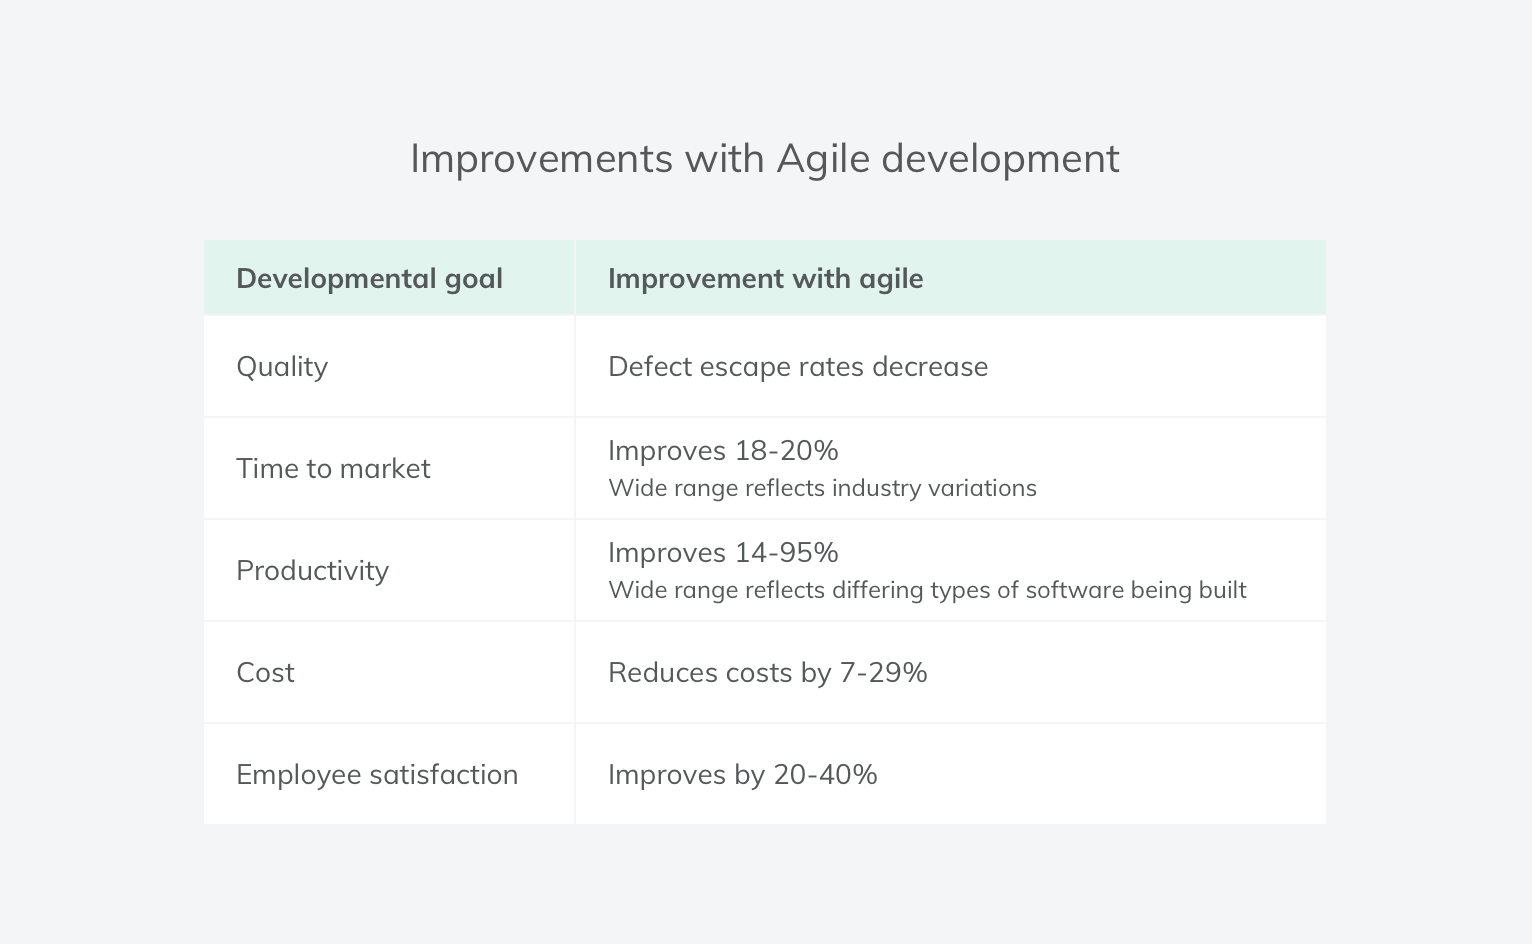 Improvements with agile process